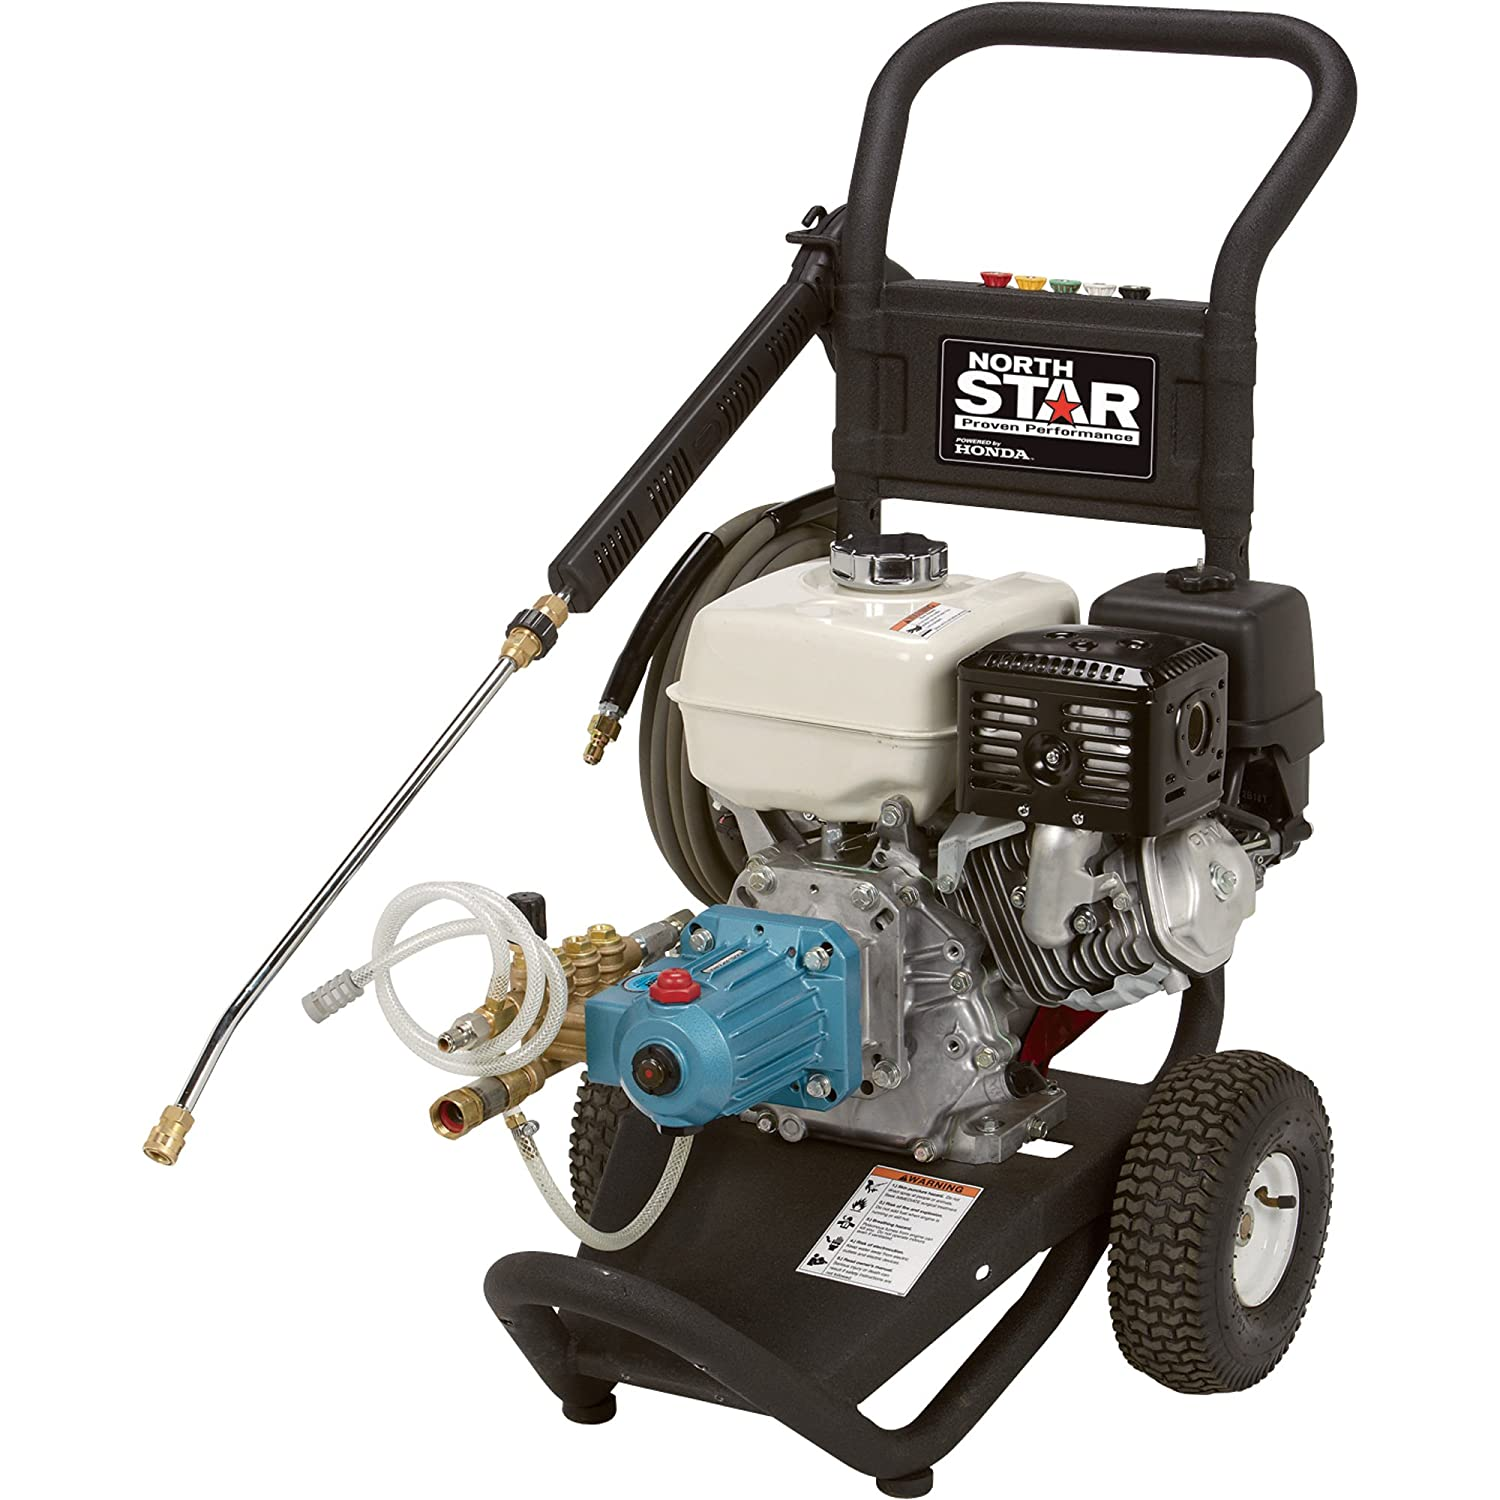 NorthStar Gas Cold Water Pressure Washer – 3300 PSI, 3.0 GPM, Honda Engine, Model Number 15781820